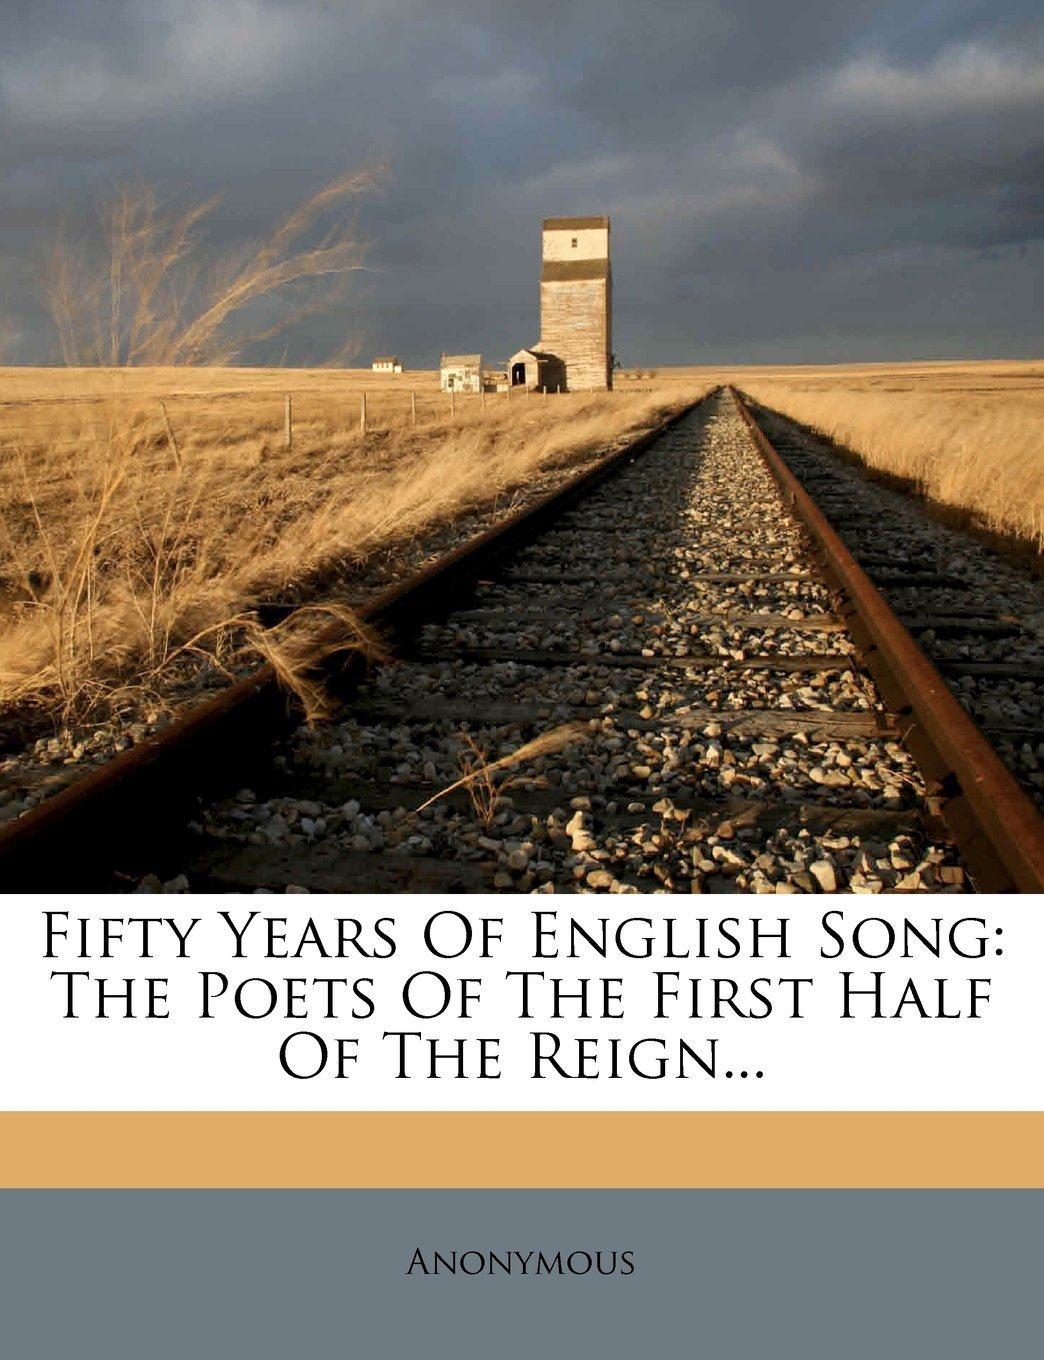 Fifty Years Of English Song: The Poets Of The First Half Of The Reign... ebook